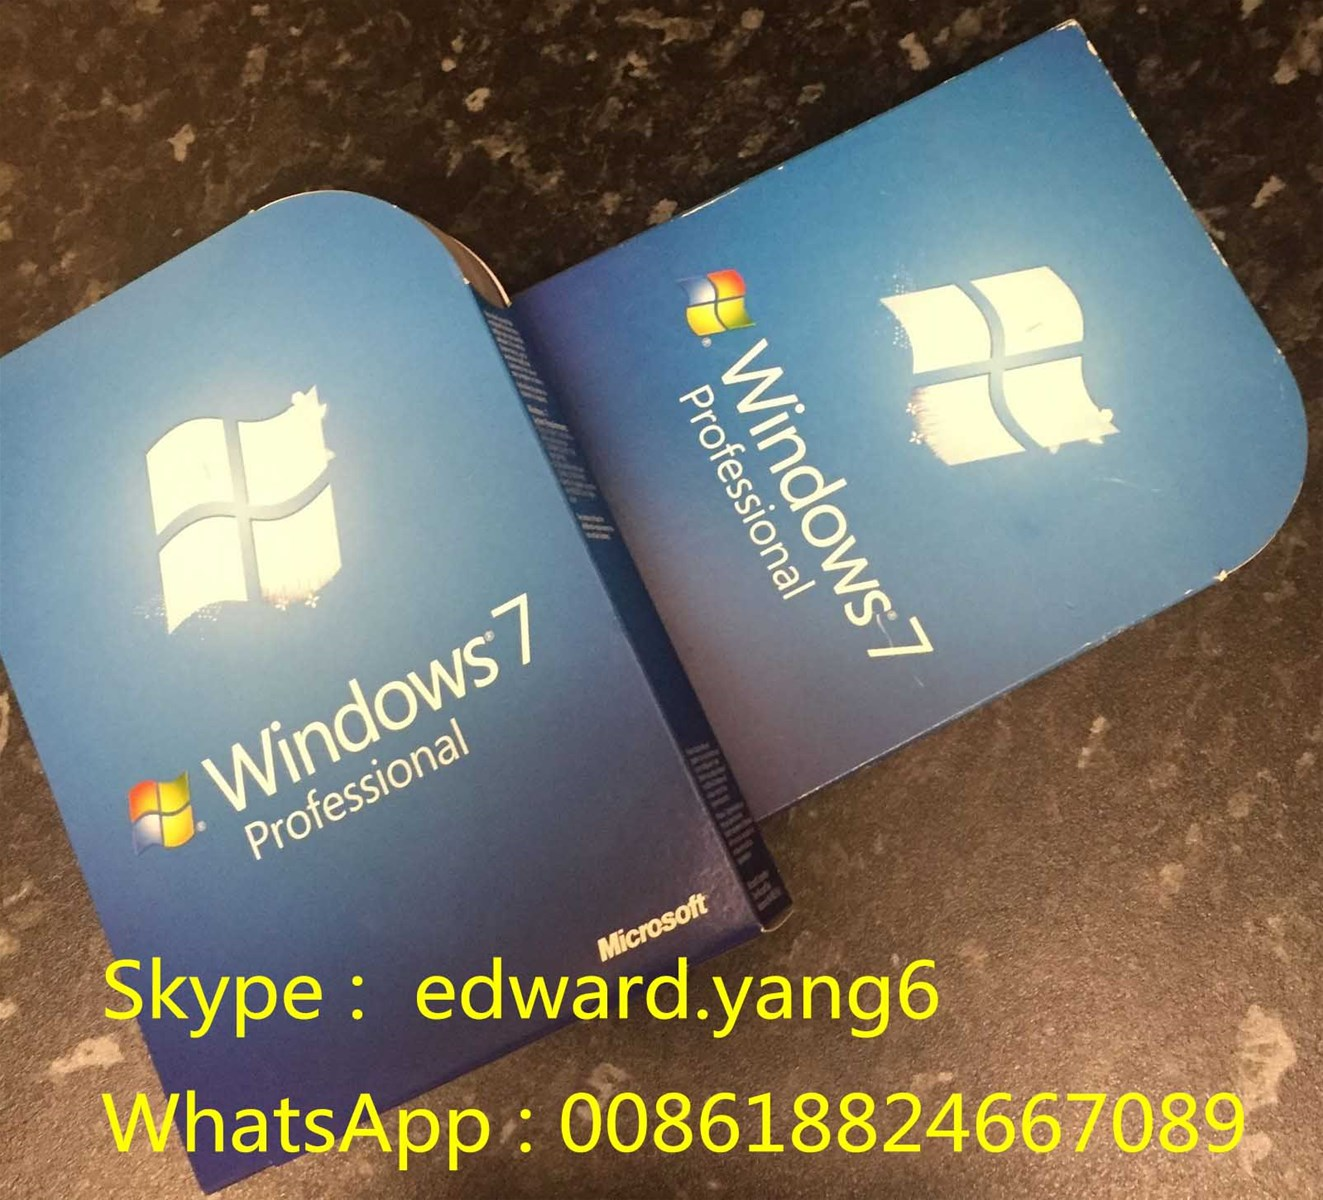 purchase windows 7 pro license key